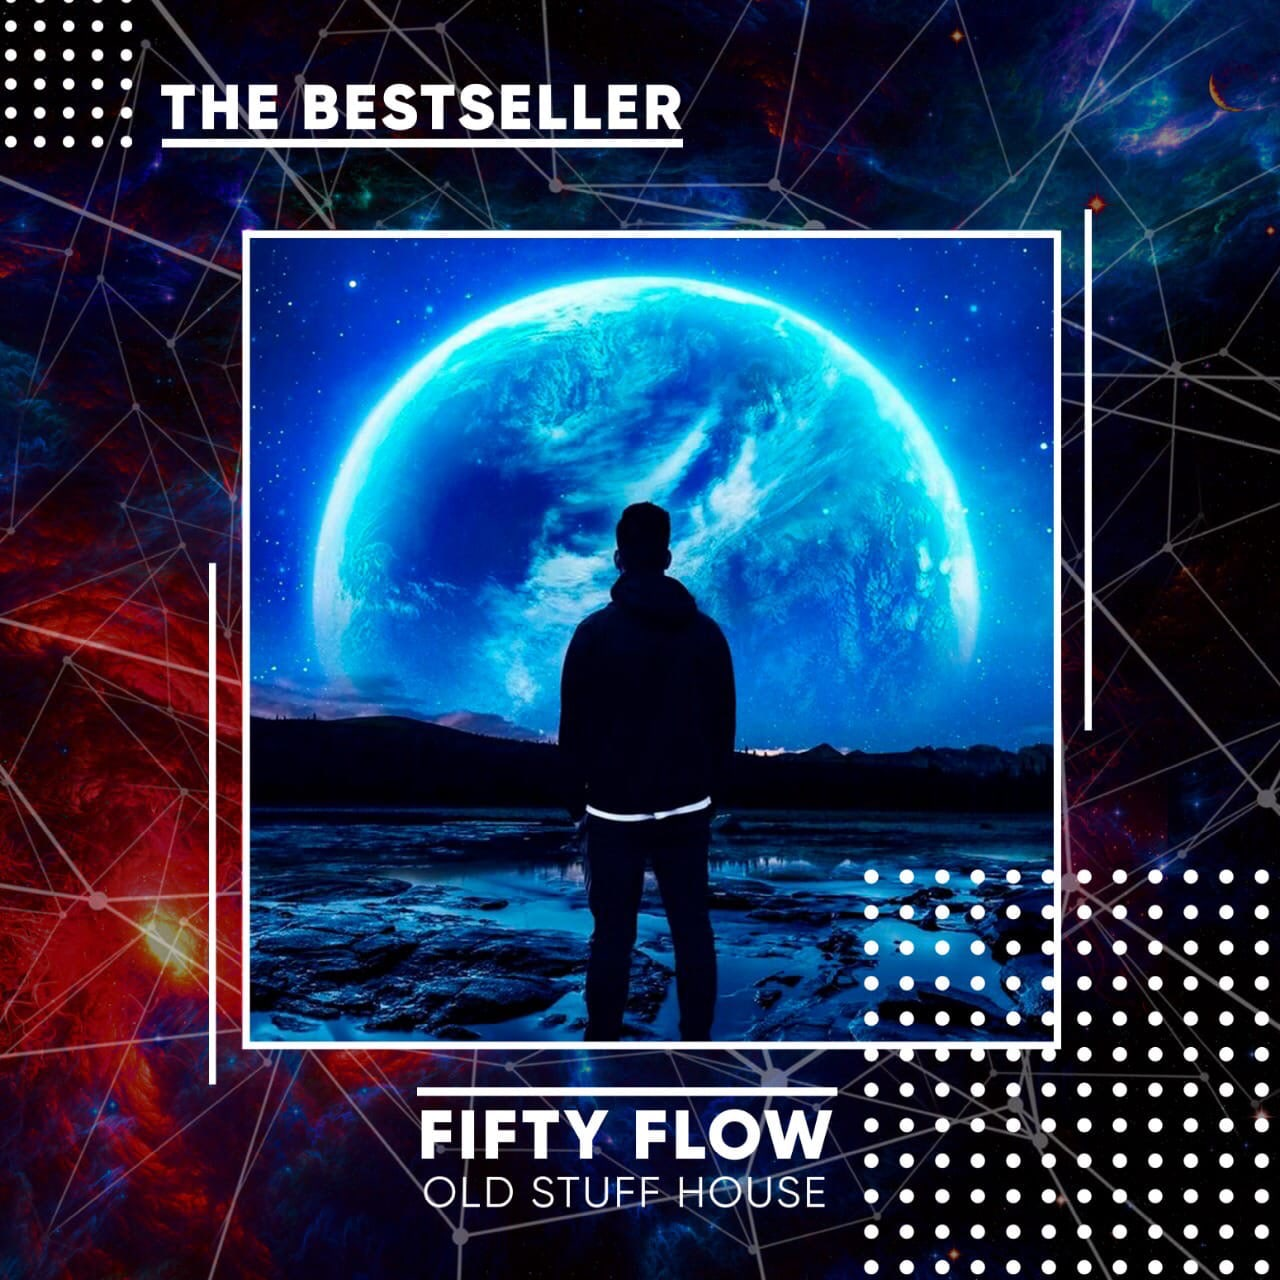 The Bestseller - Fifty Flow (Old Stuff House)